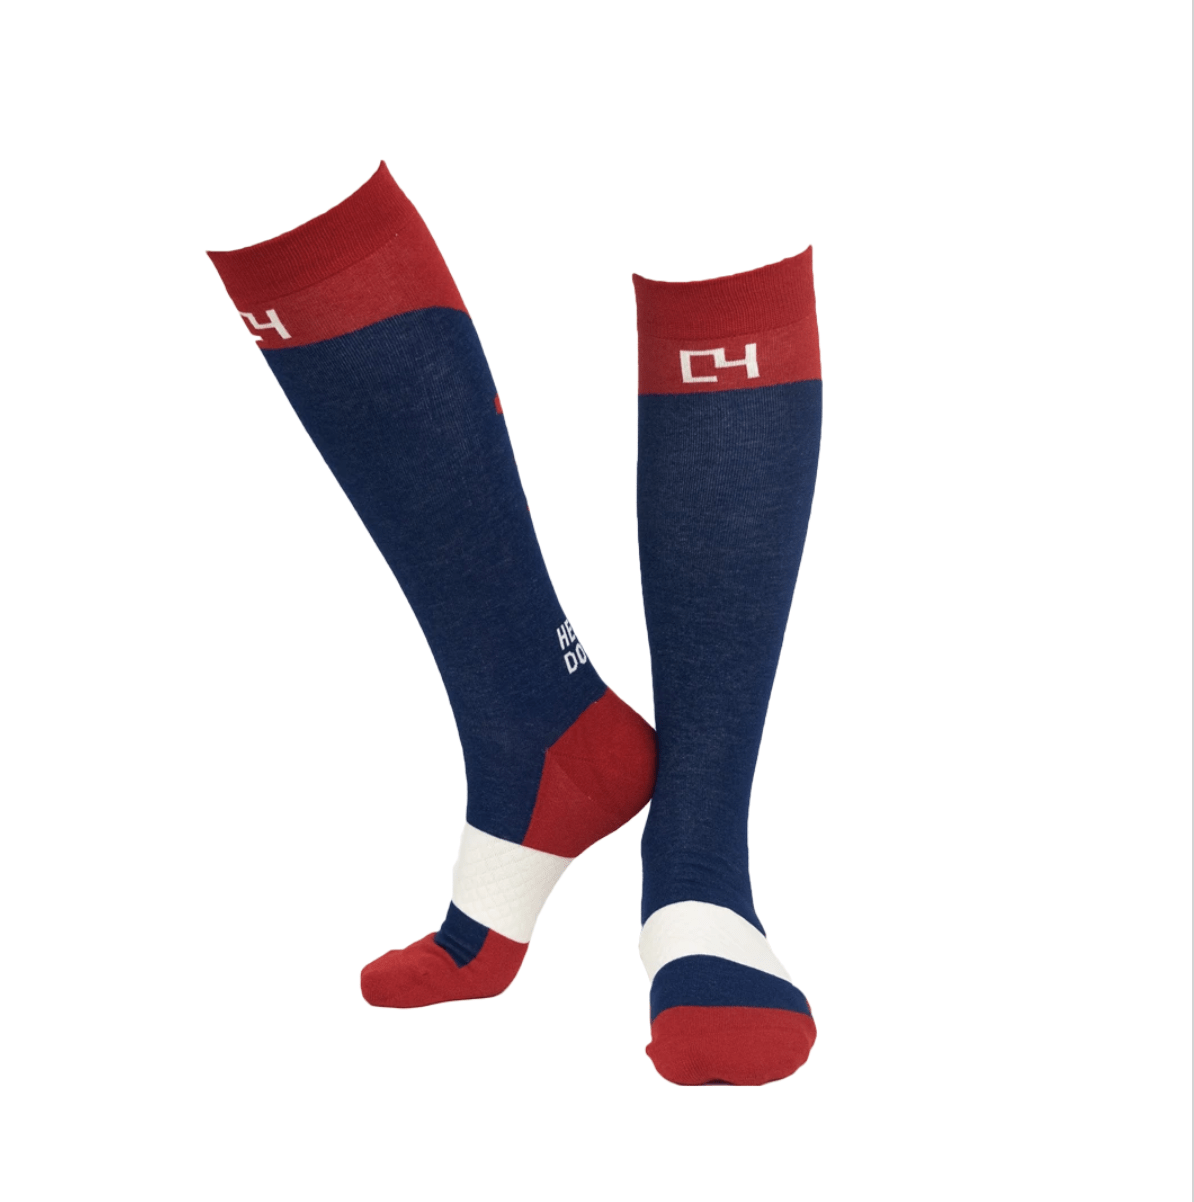 C4 Belts Socks C4 Riding Socks -Navy/Red equestrian team apparel online tack store mobile tack store custom farm apparel custom show stable clothing equestrian lifestyle horse show clothing riding clothes horses equestrian tack store